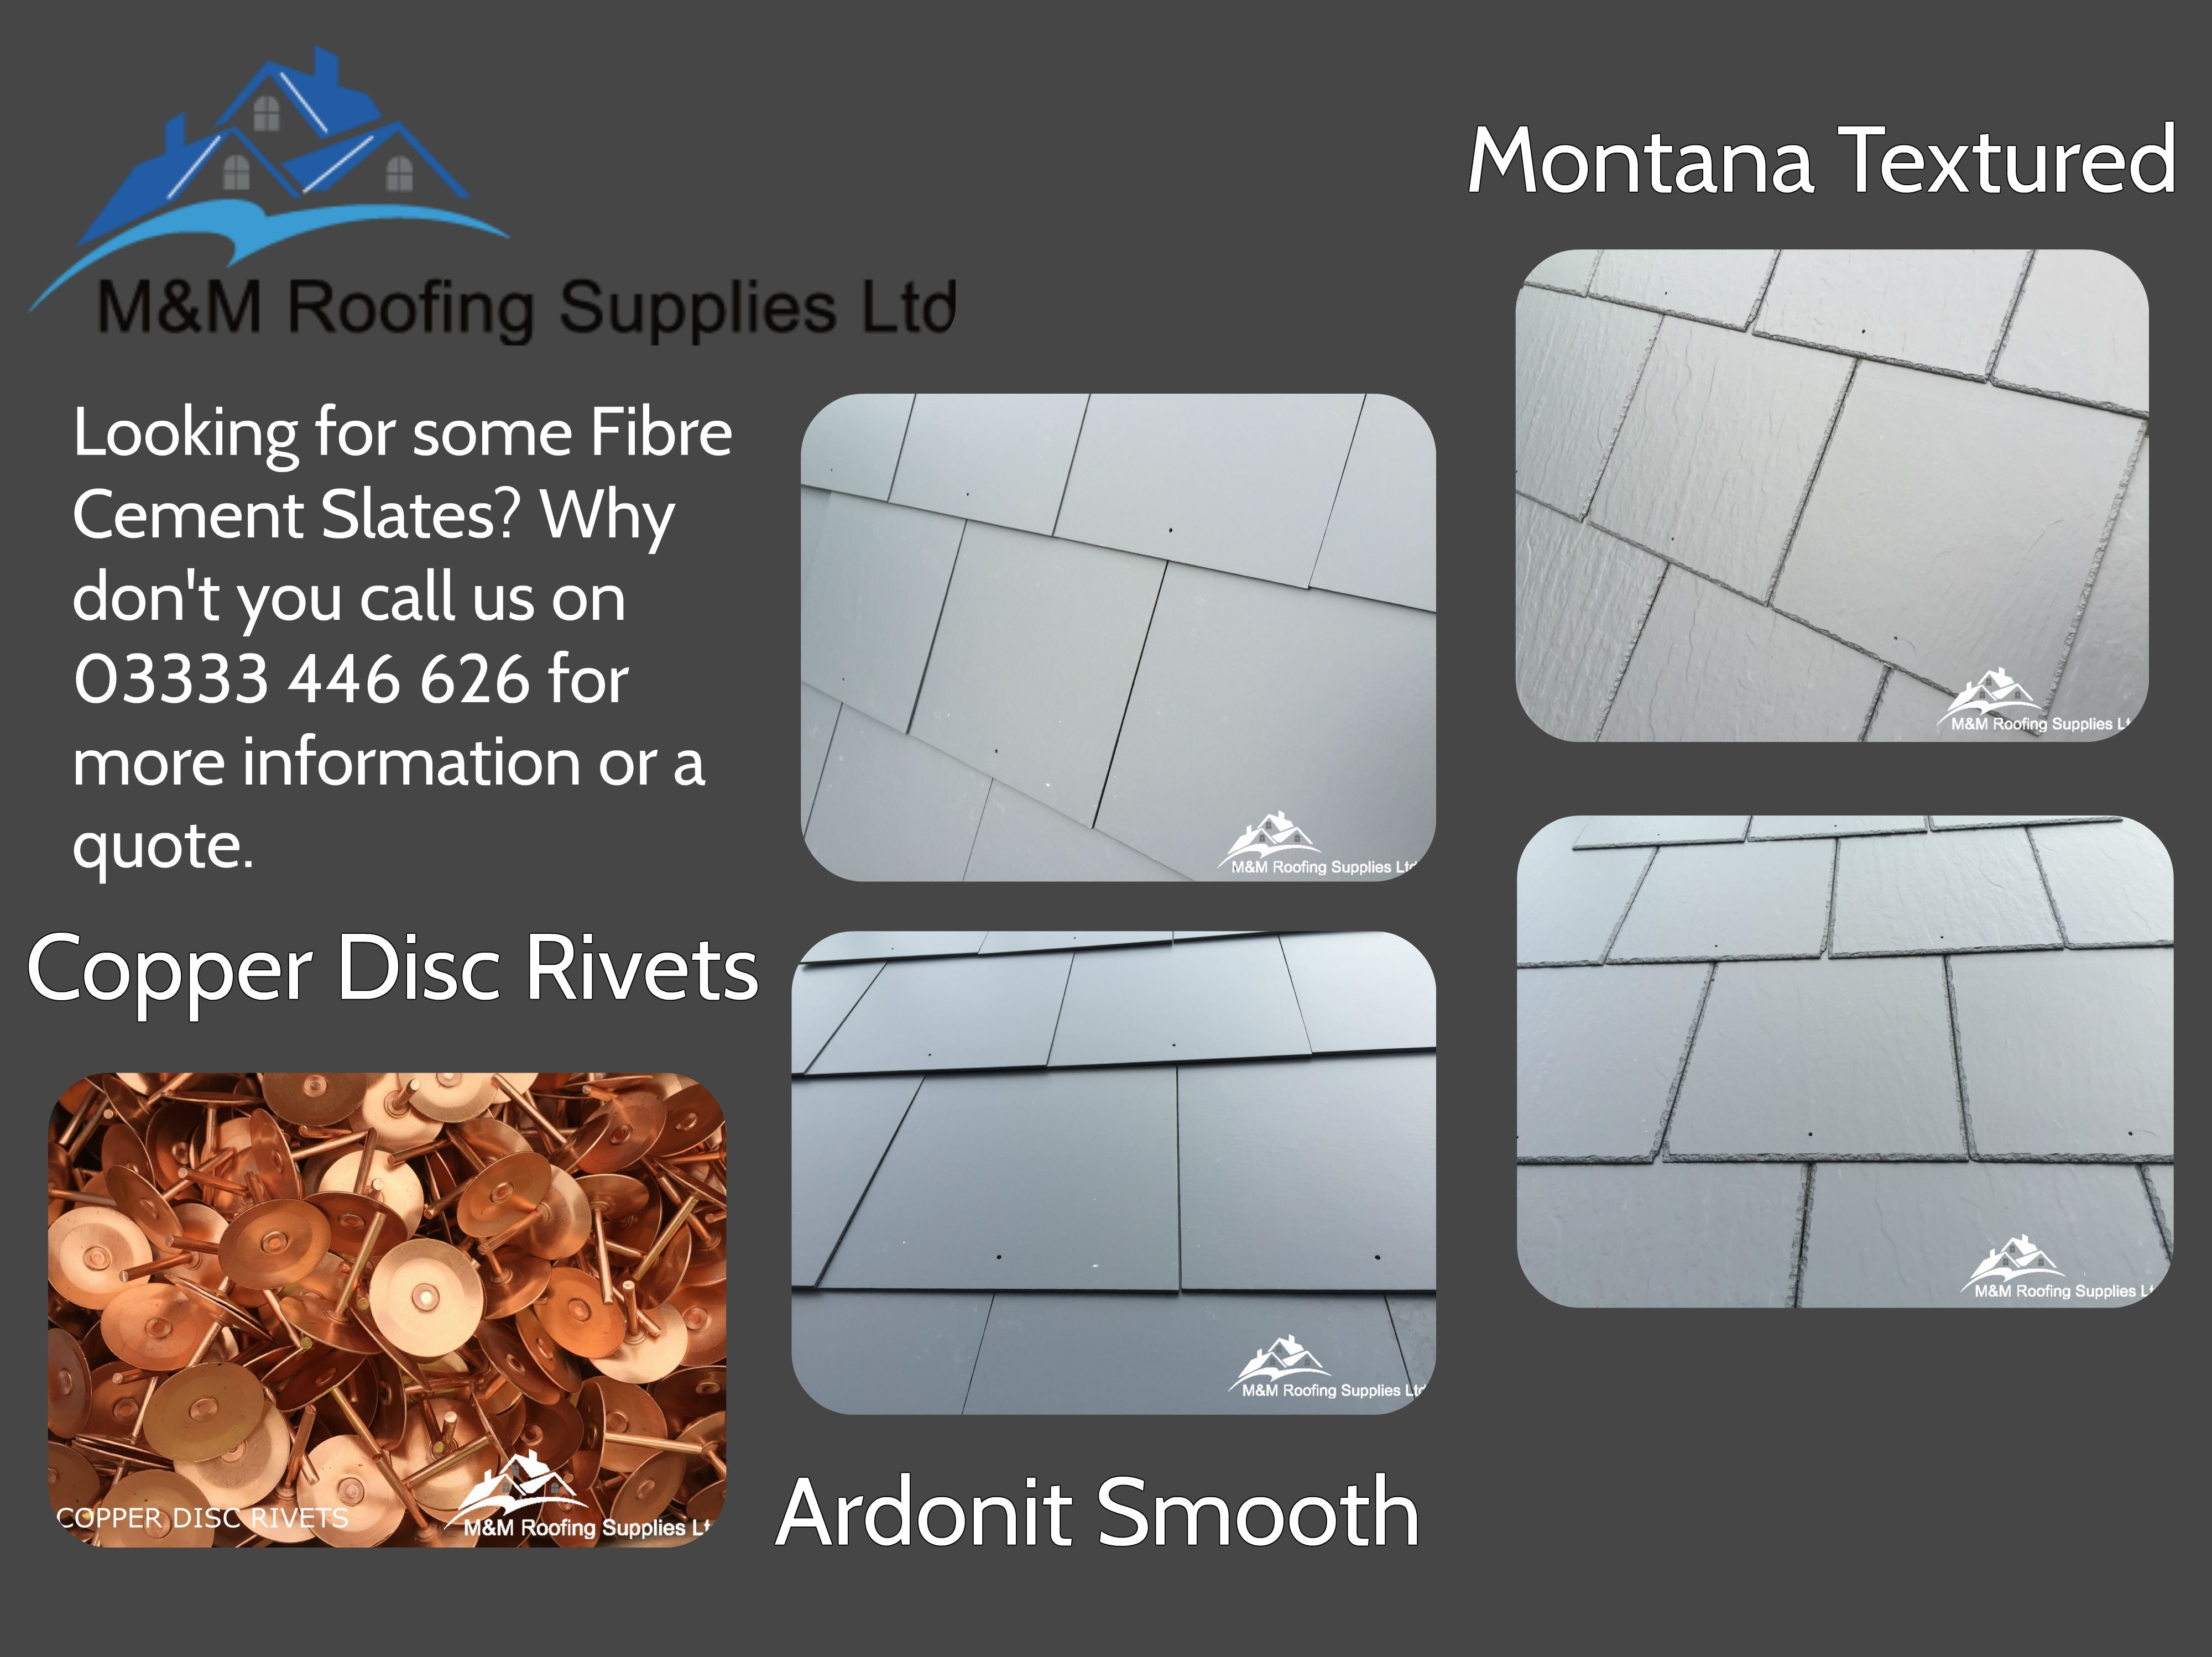 We Supplies Fibre Cement Slates In A Smooth Finish And Textured Finish With Accessories Of Copper Disc Rivets And Cop Roofing Supplies Fiber Cement Clout Nails